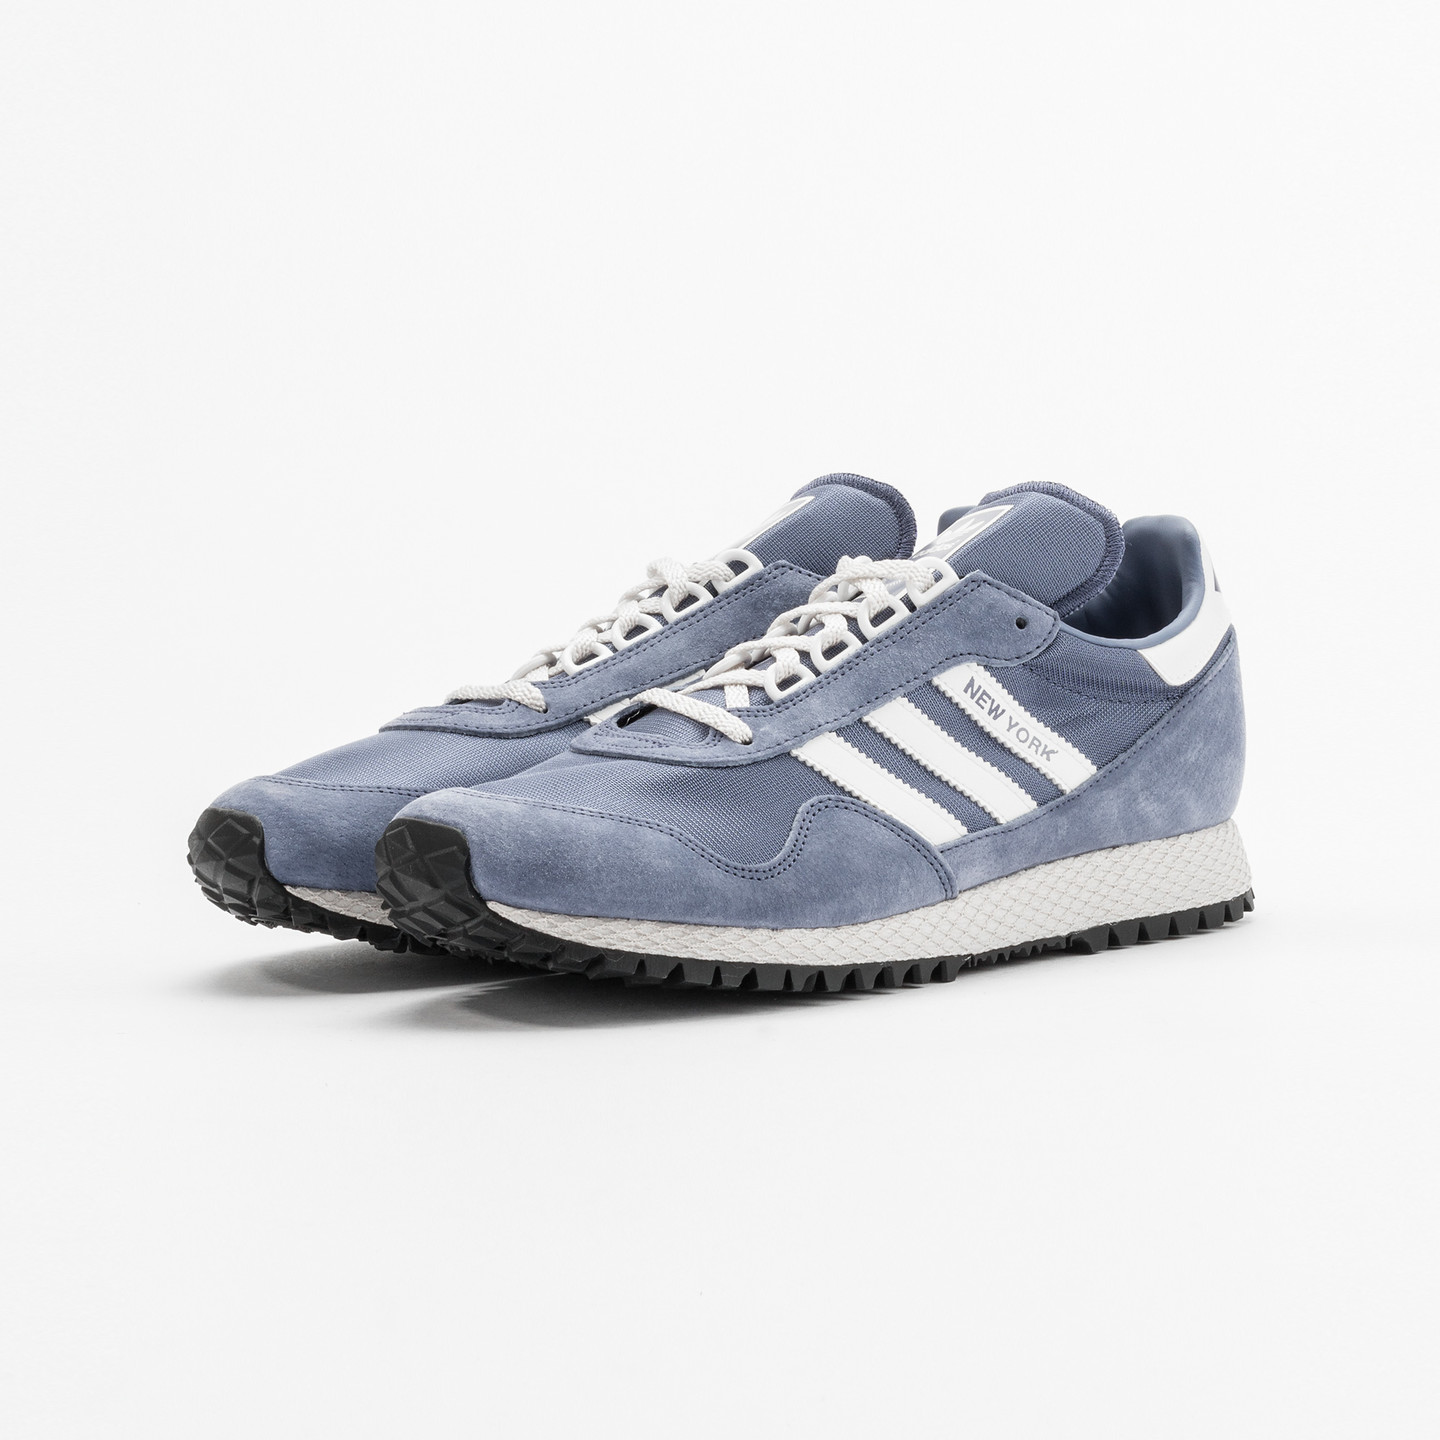 Adidas New York Super Purple / Vintage White / Core Black BY9340